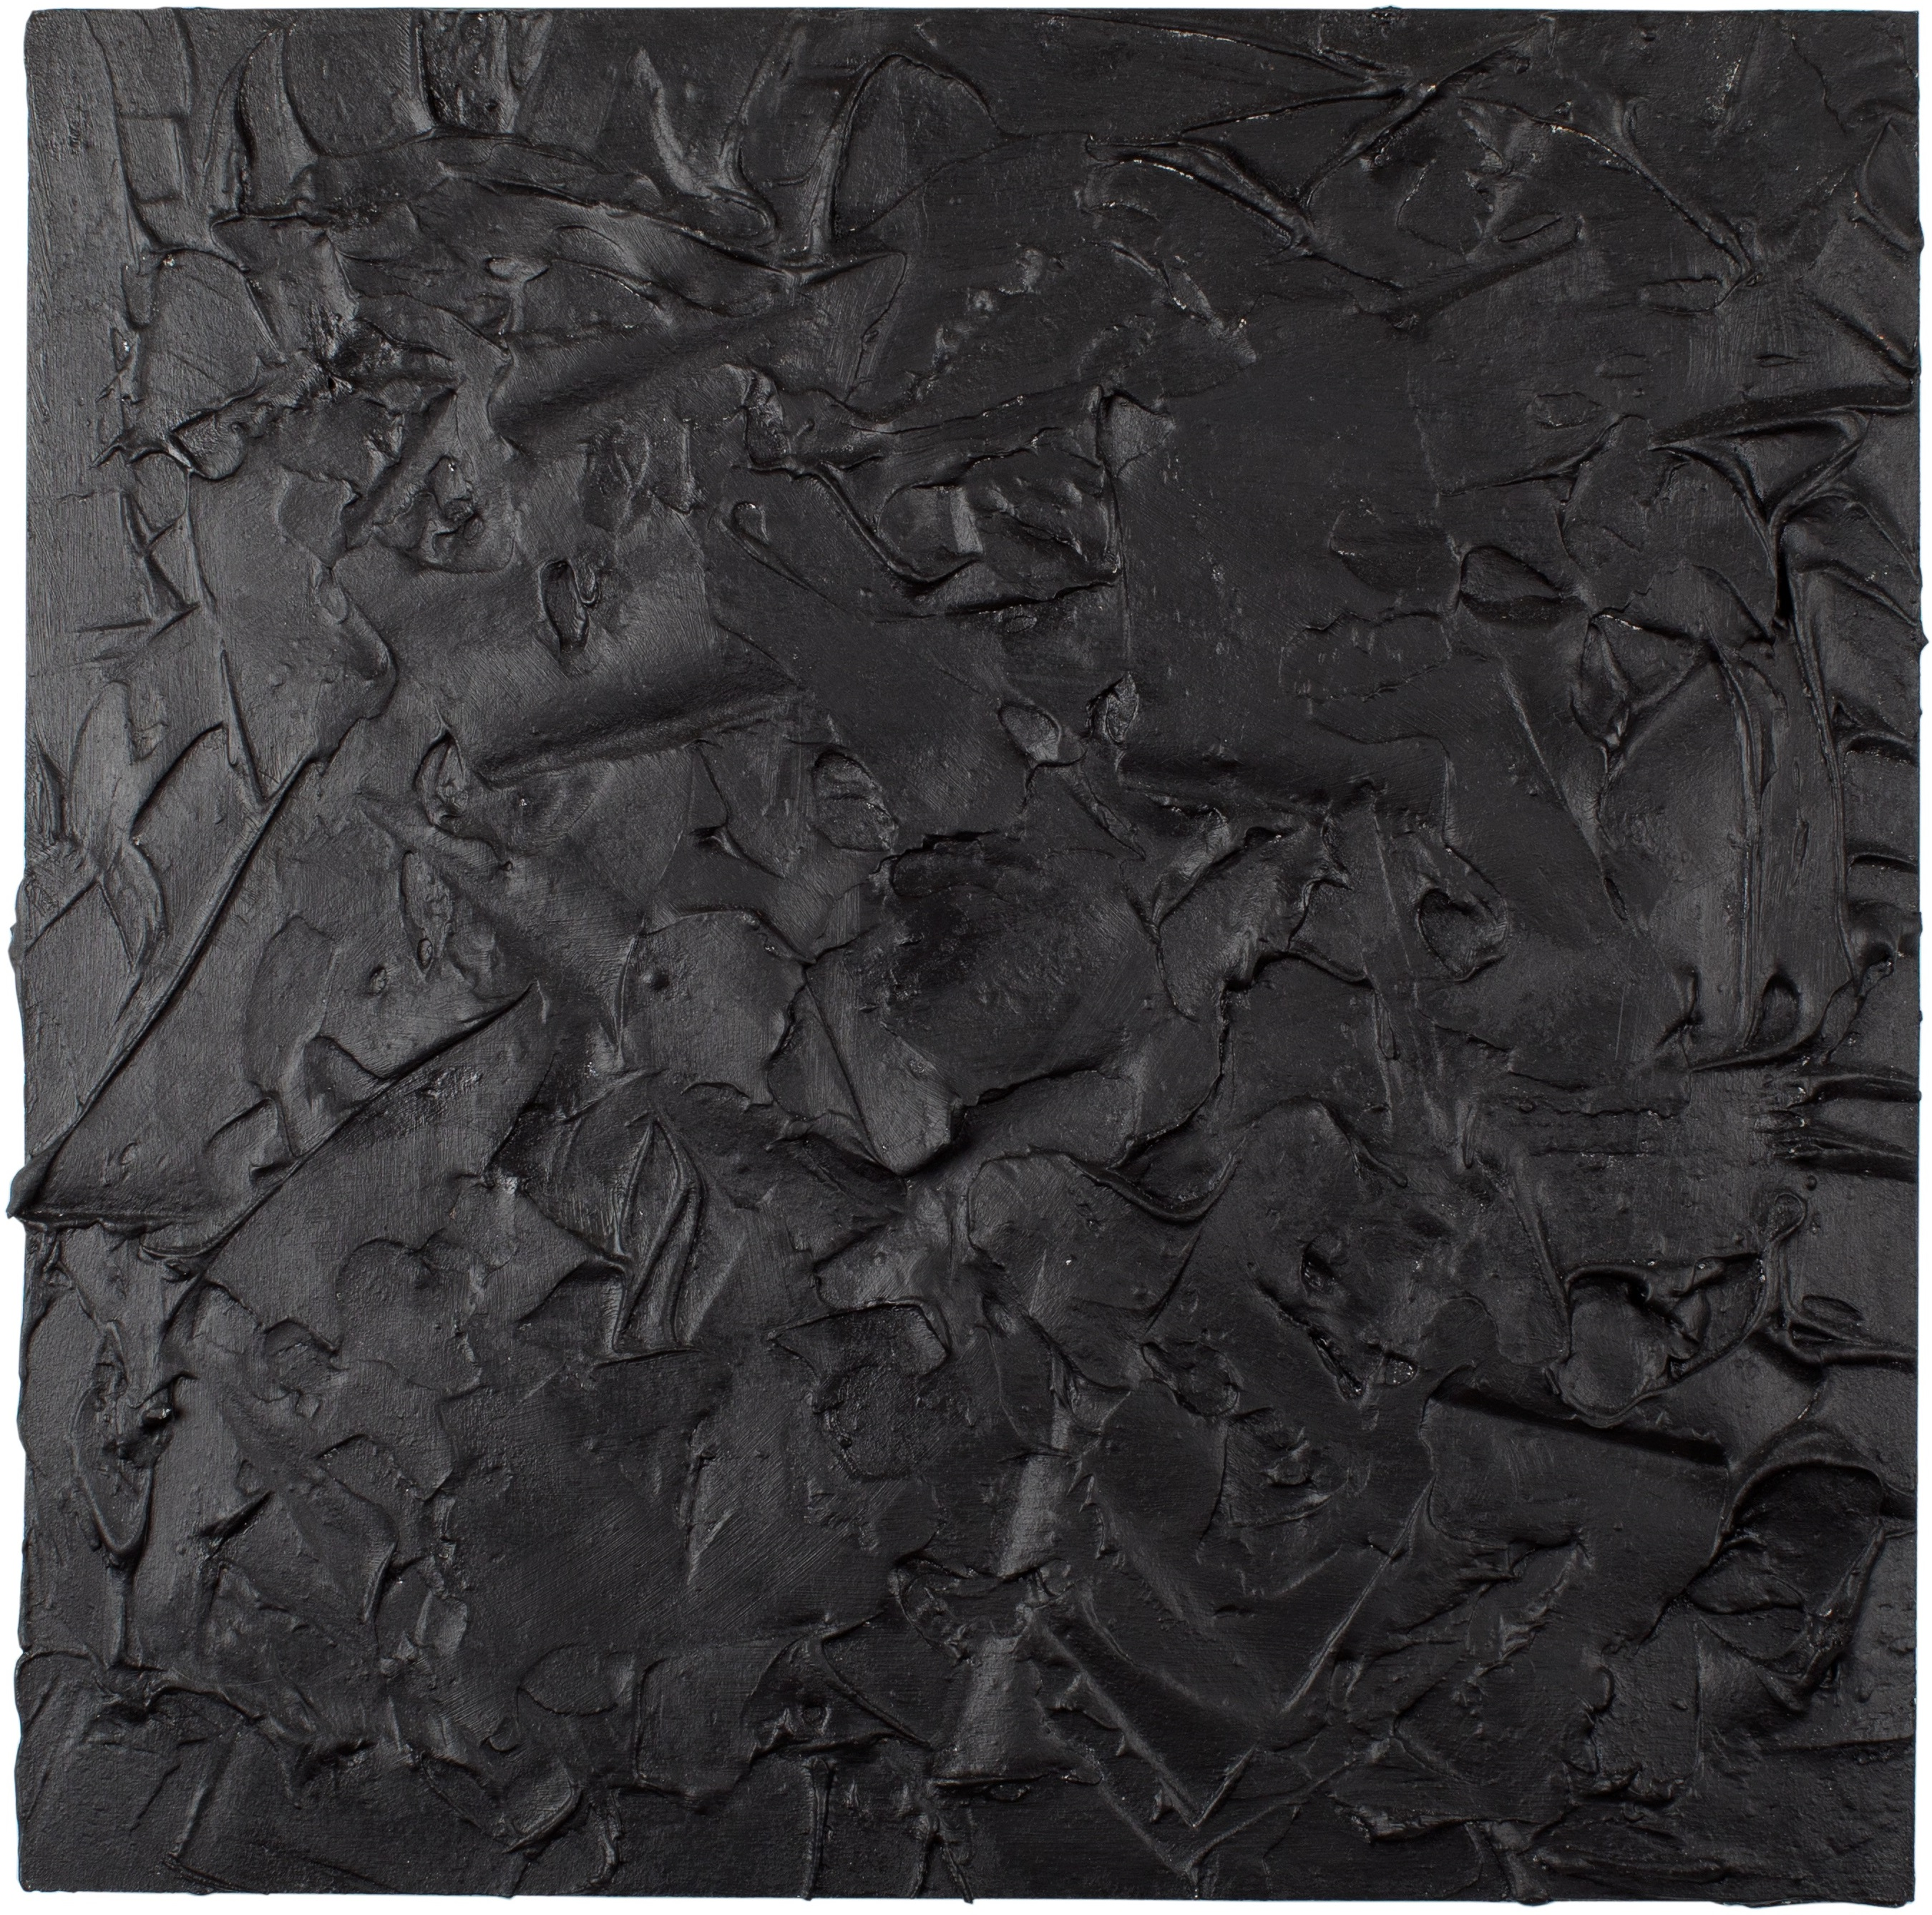 NERO - Plaster and acrylic on chipboard, 45x45cm - UNAVAILABLE